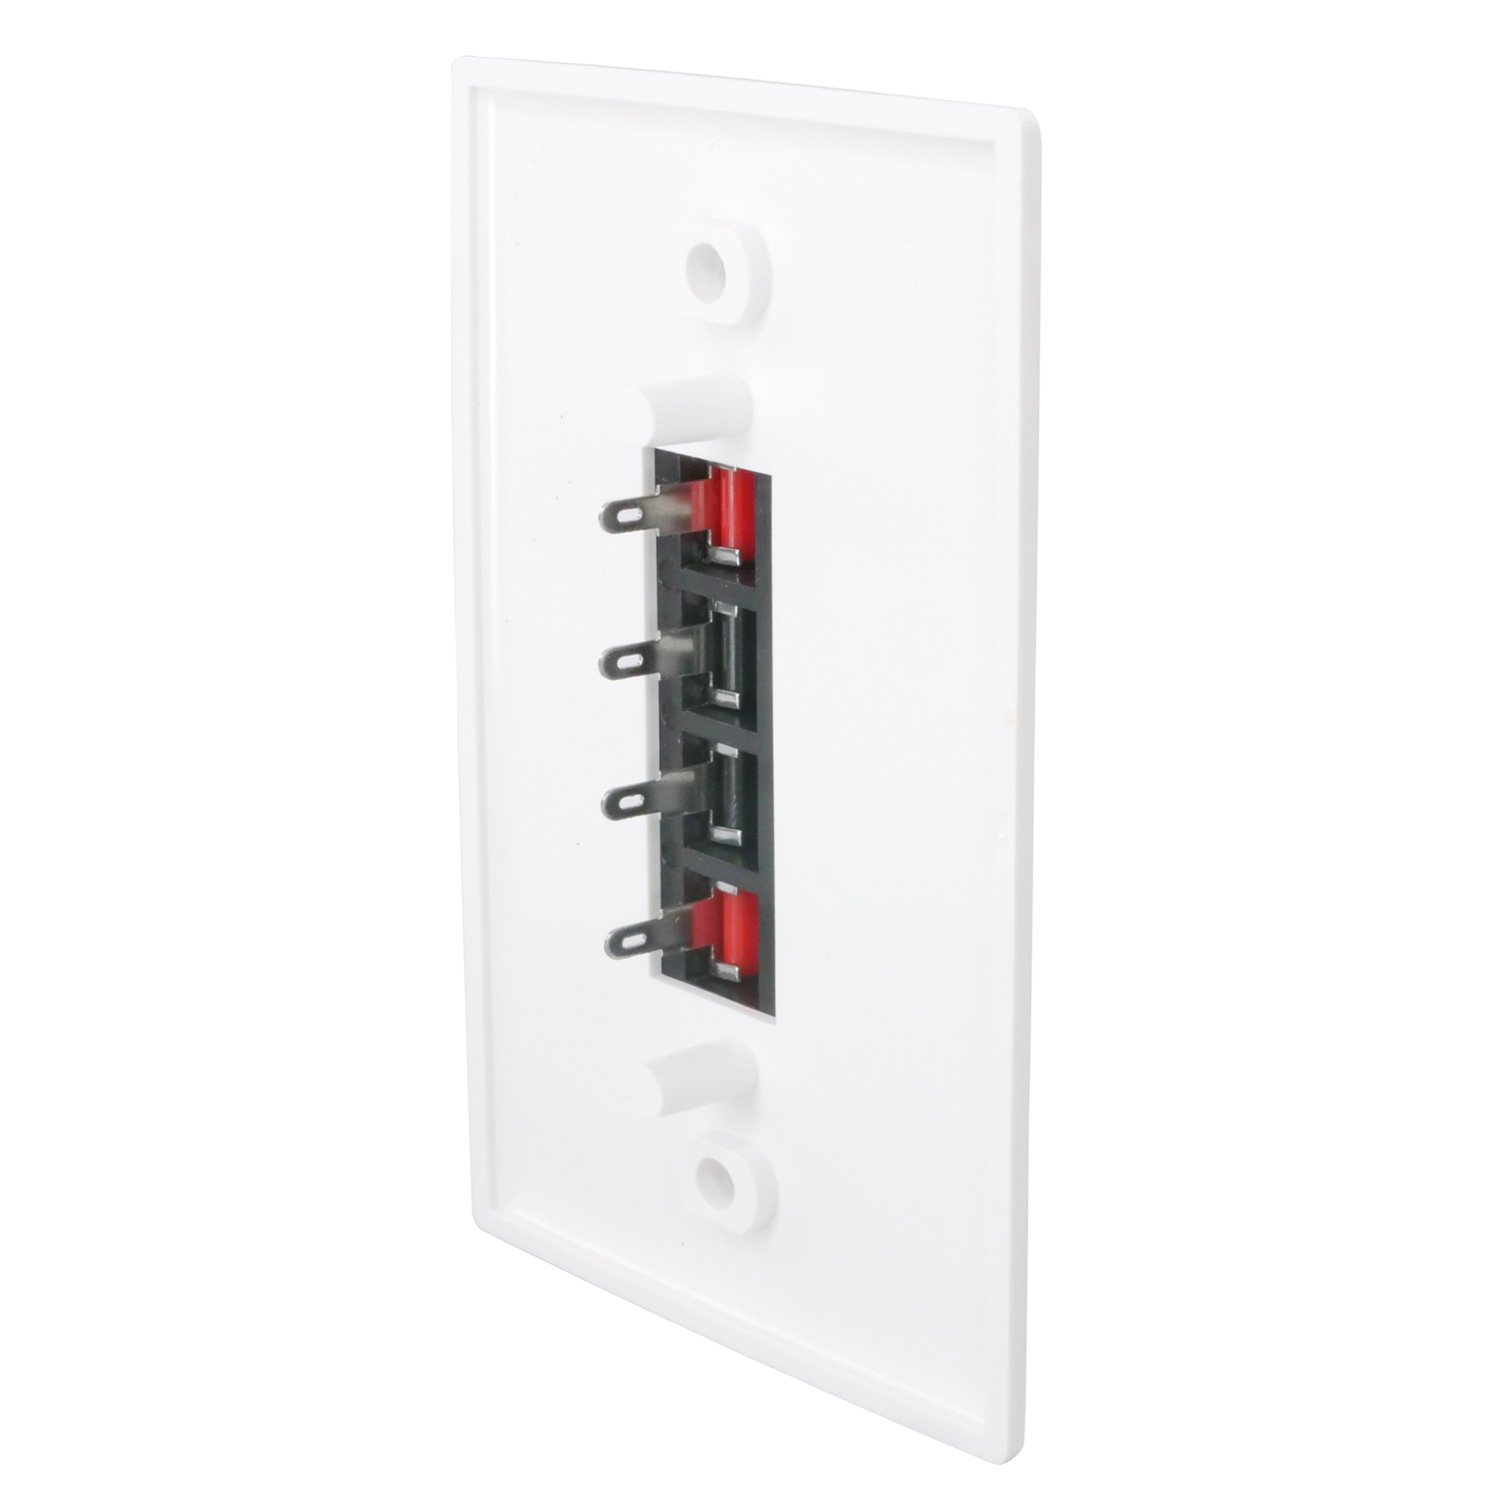 Spring Clip Wall Plate For Audio Speaker Wires with 4 Terminal PI